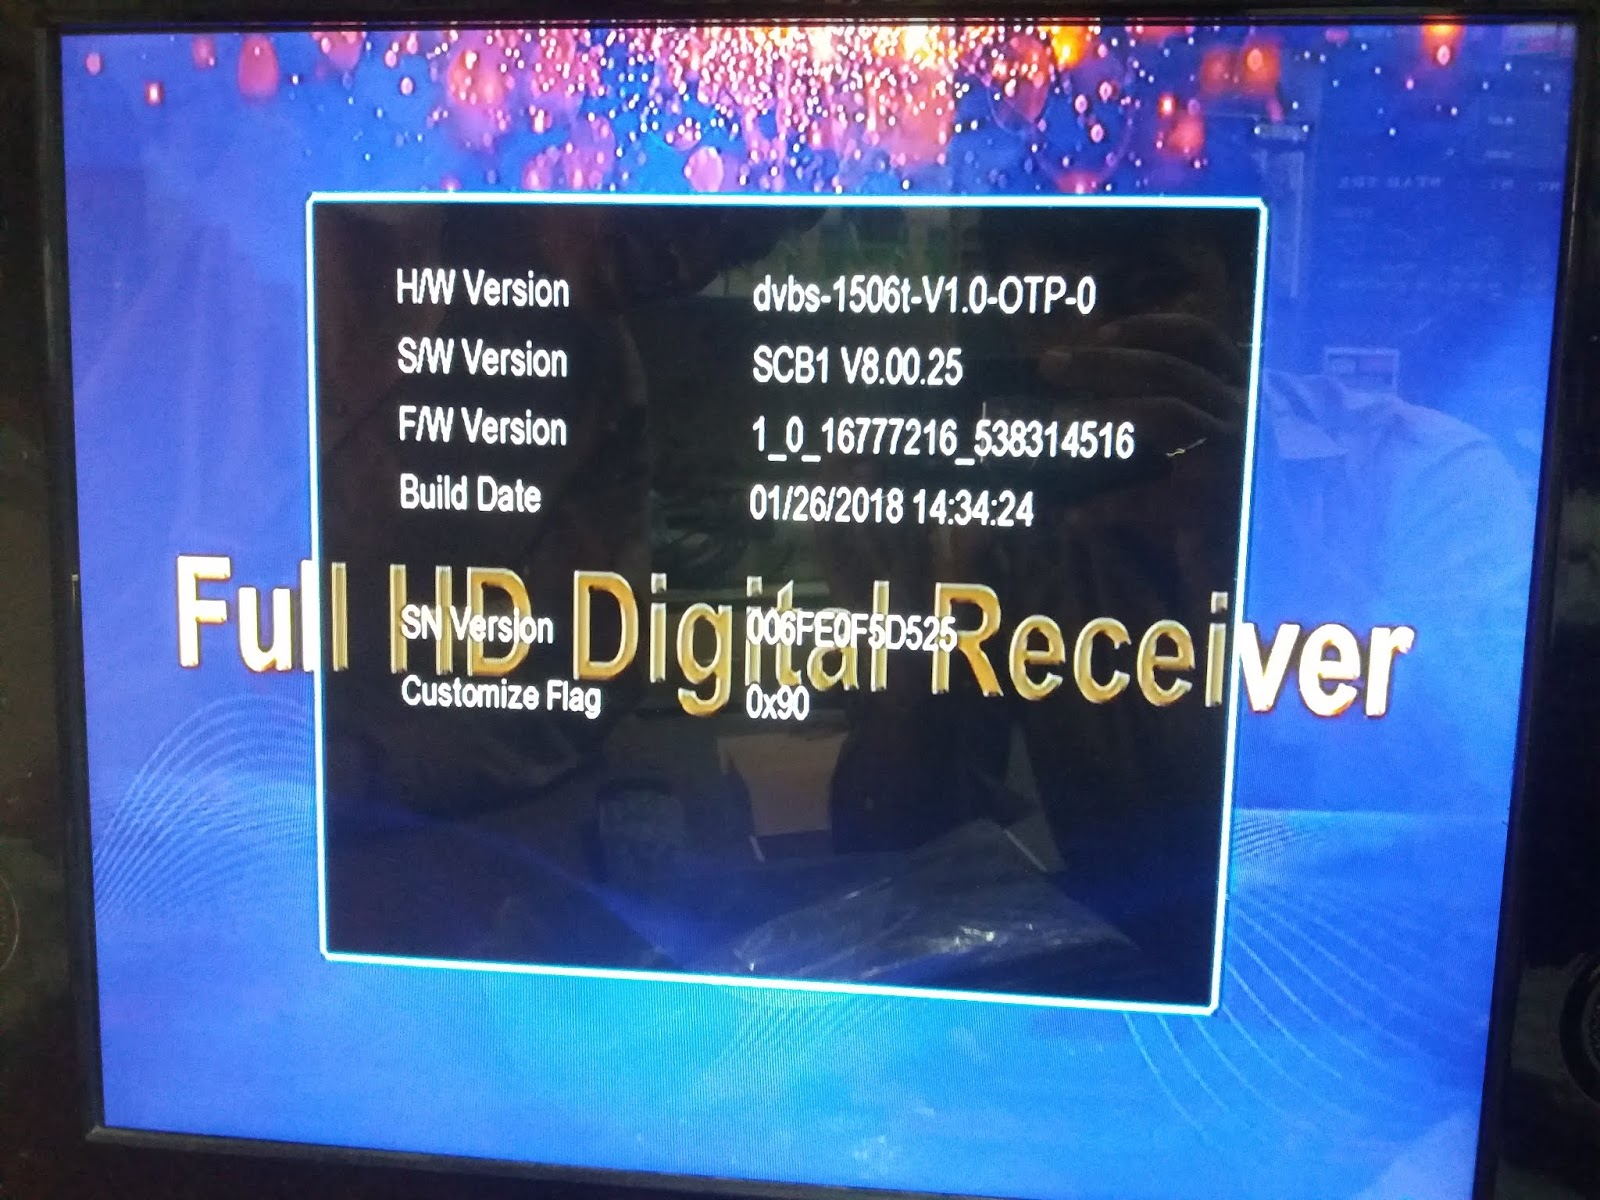 All Dish Receiver Software: January 2019